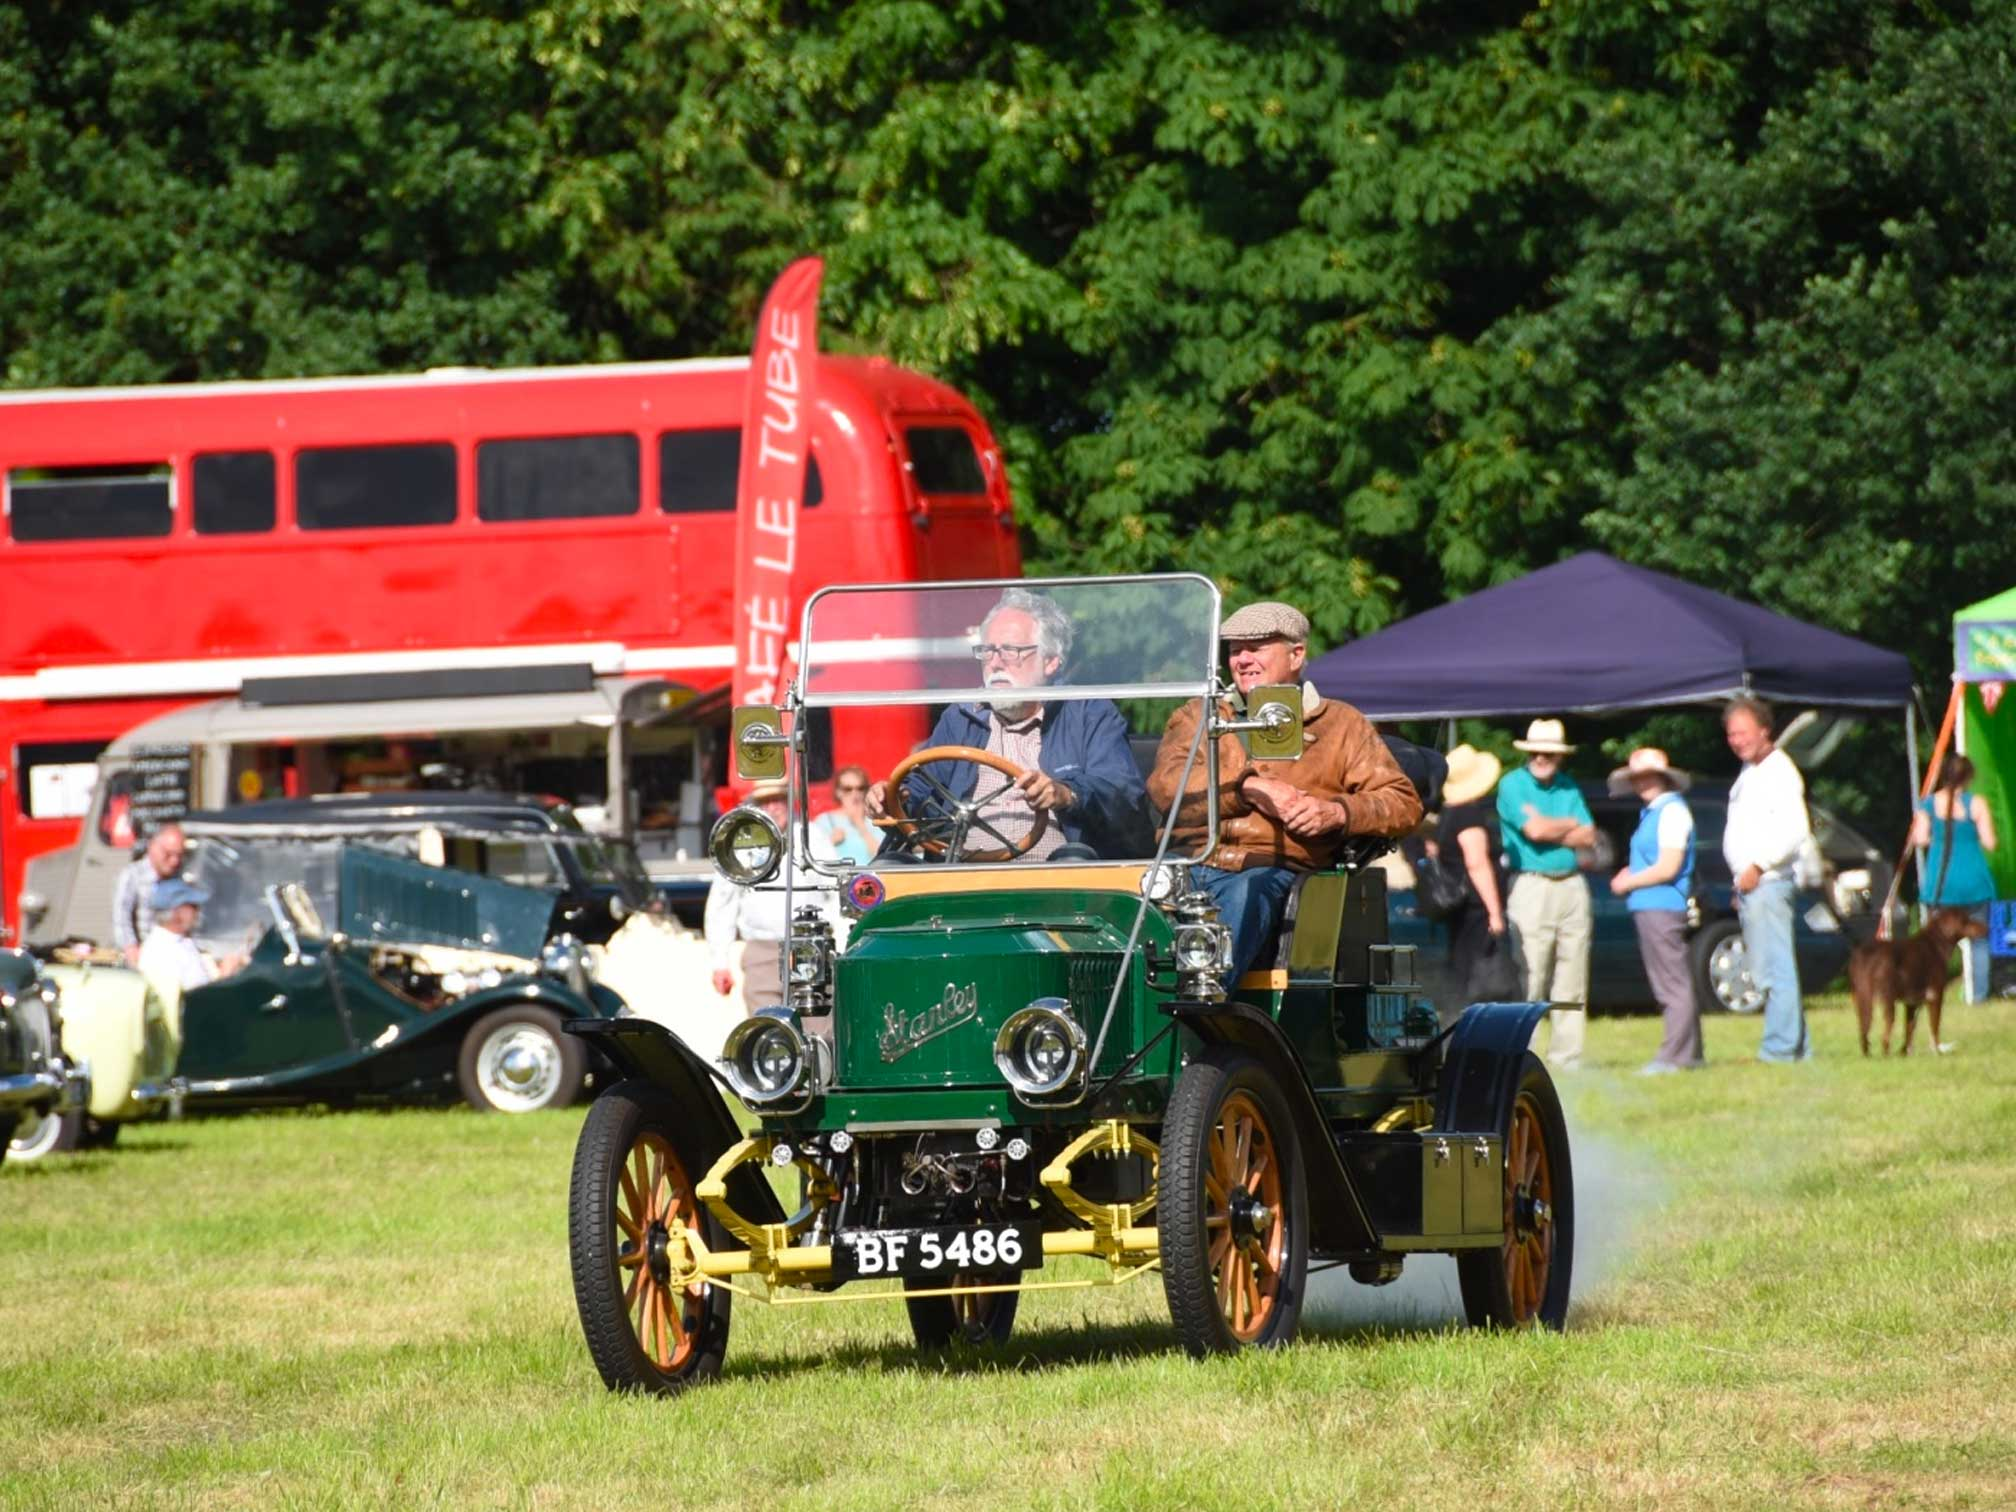 letchworth_garden_city_and_vintage_car_annual_picnic_hitchin